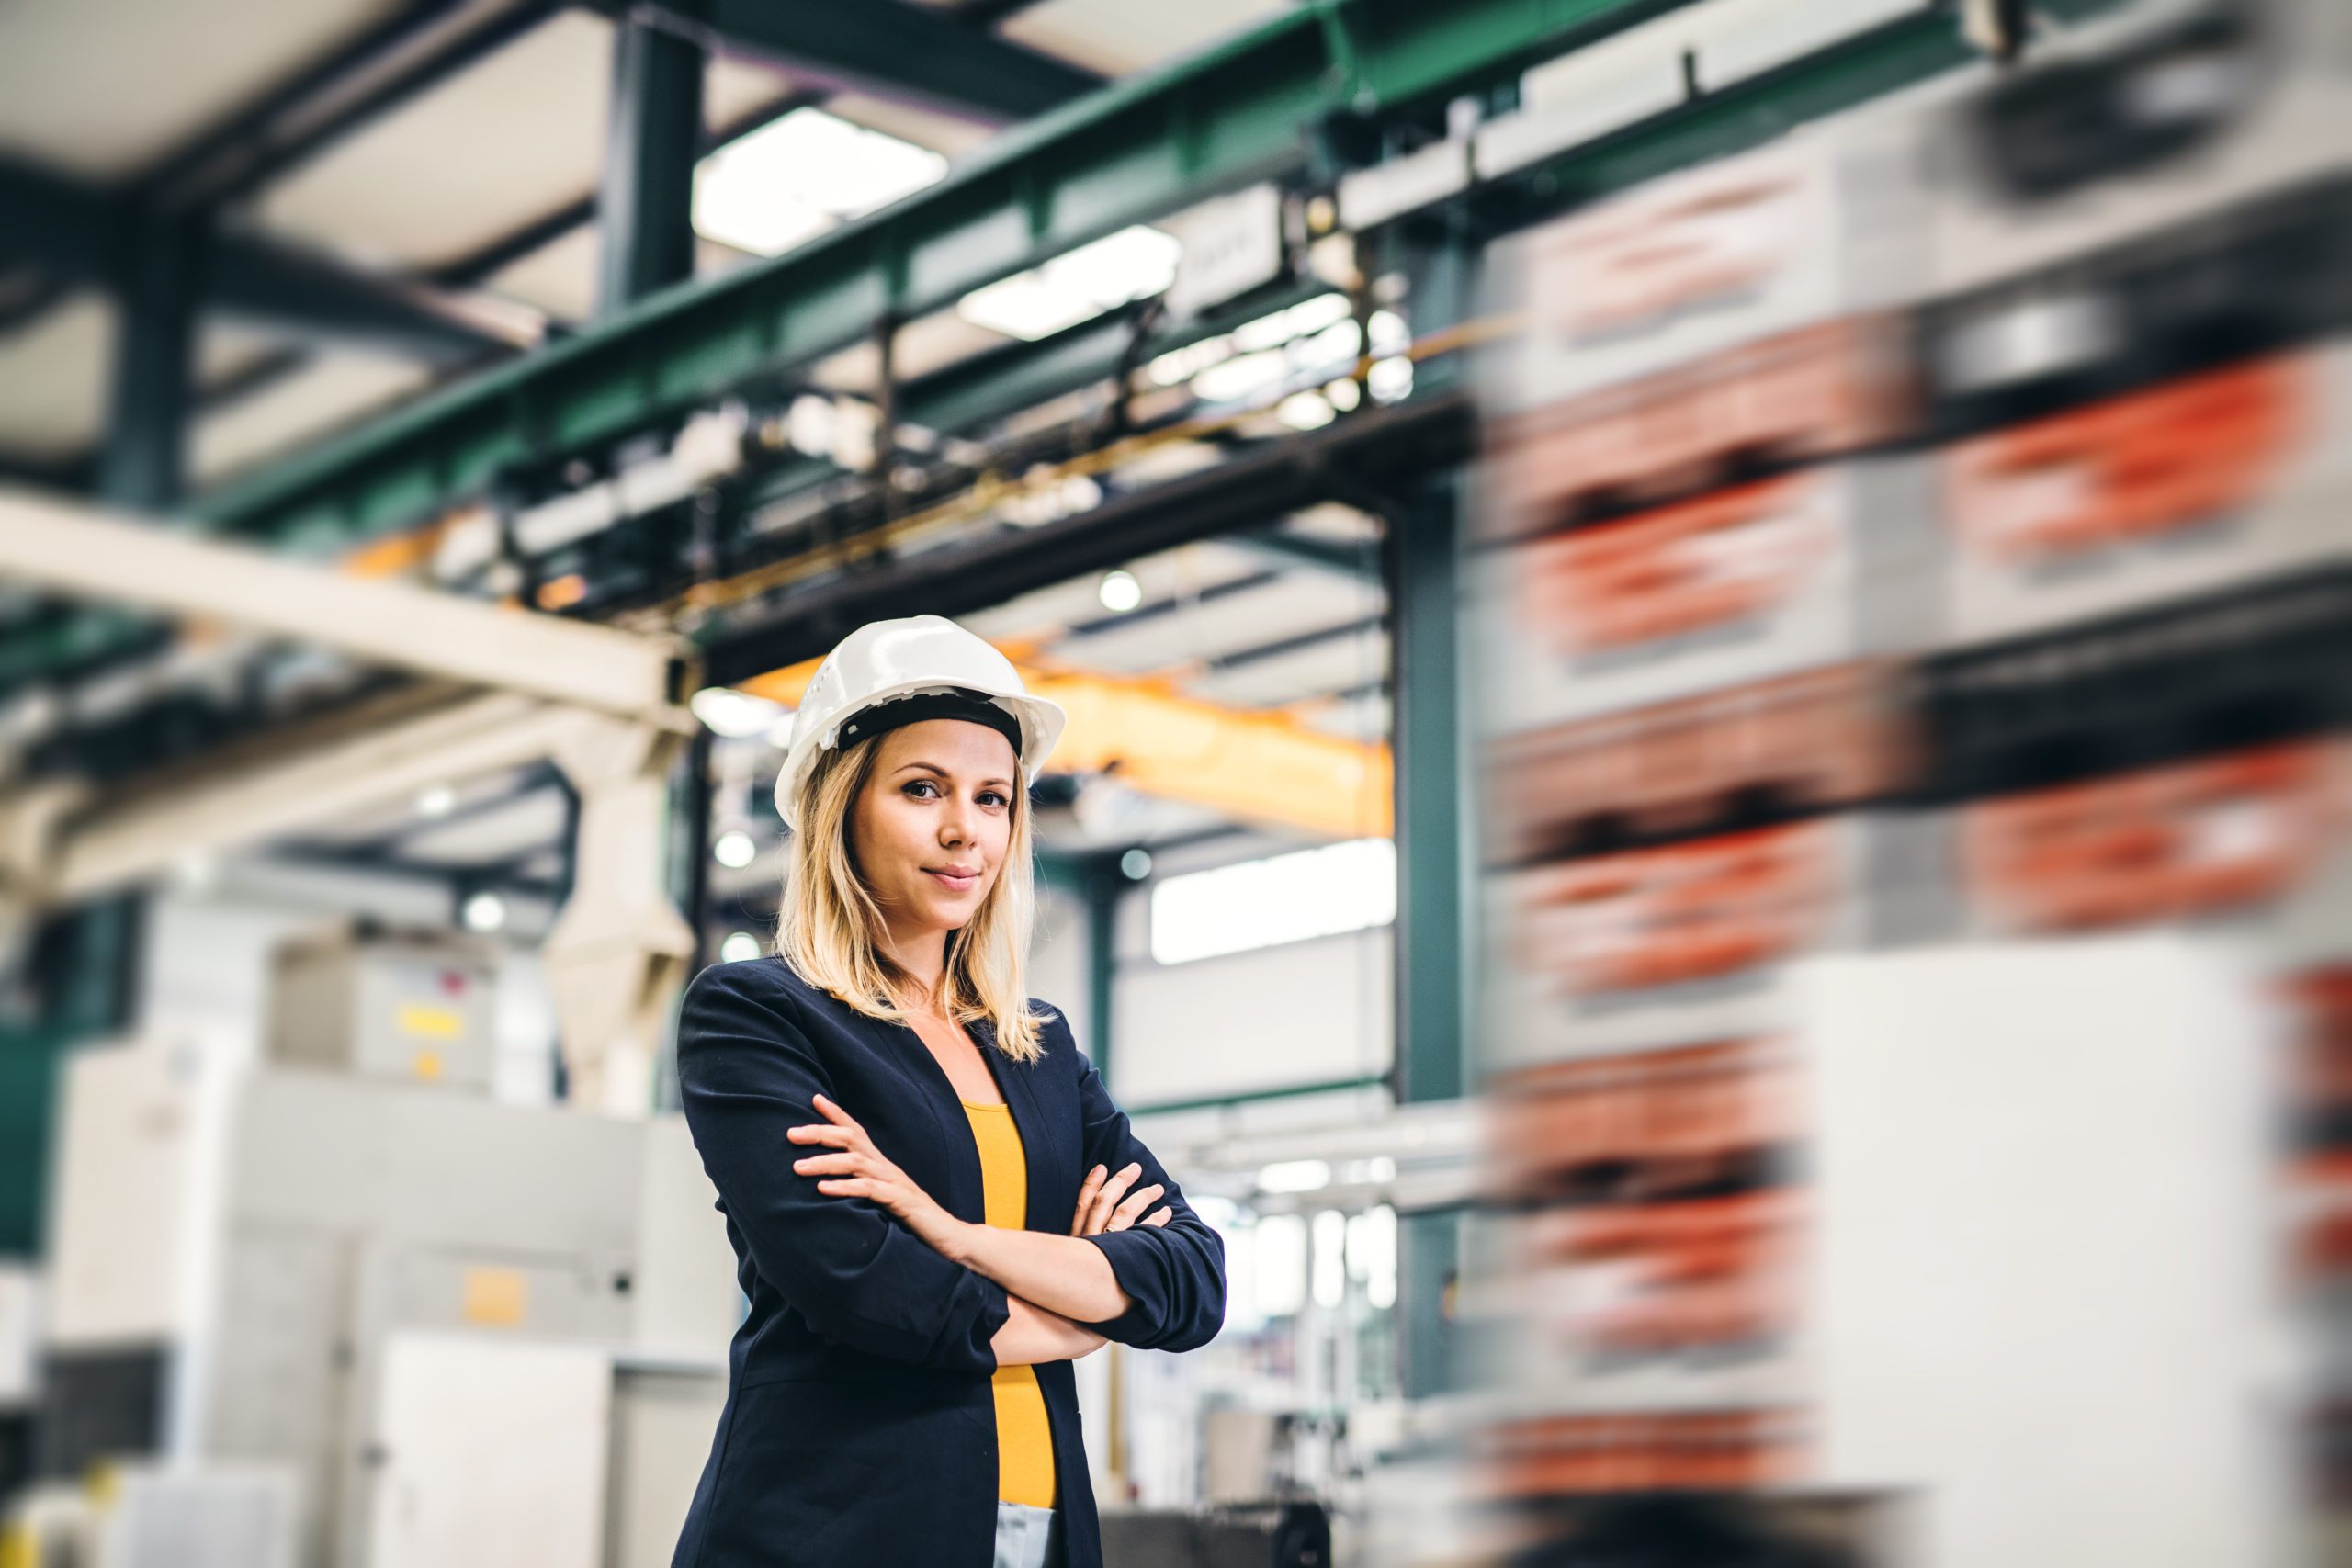 A portrait of a young industrial woman engineer standing in a factory, arms crossed.